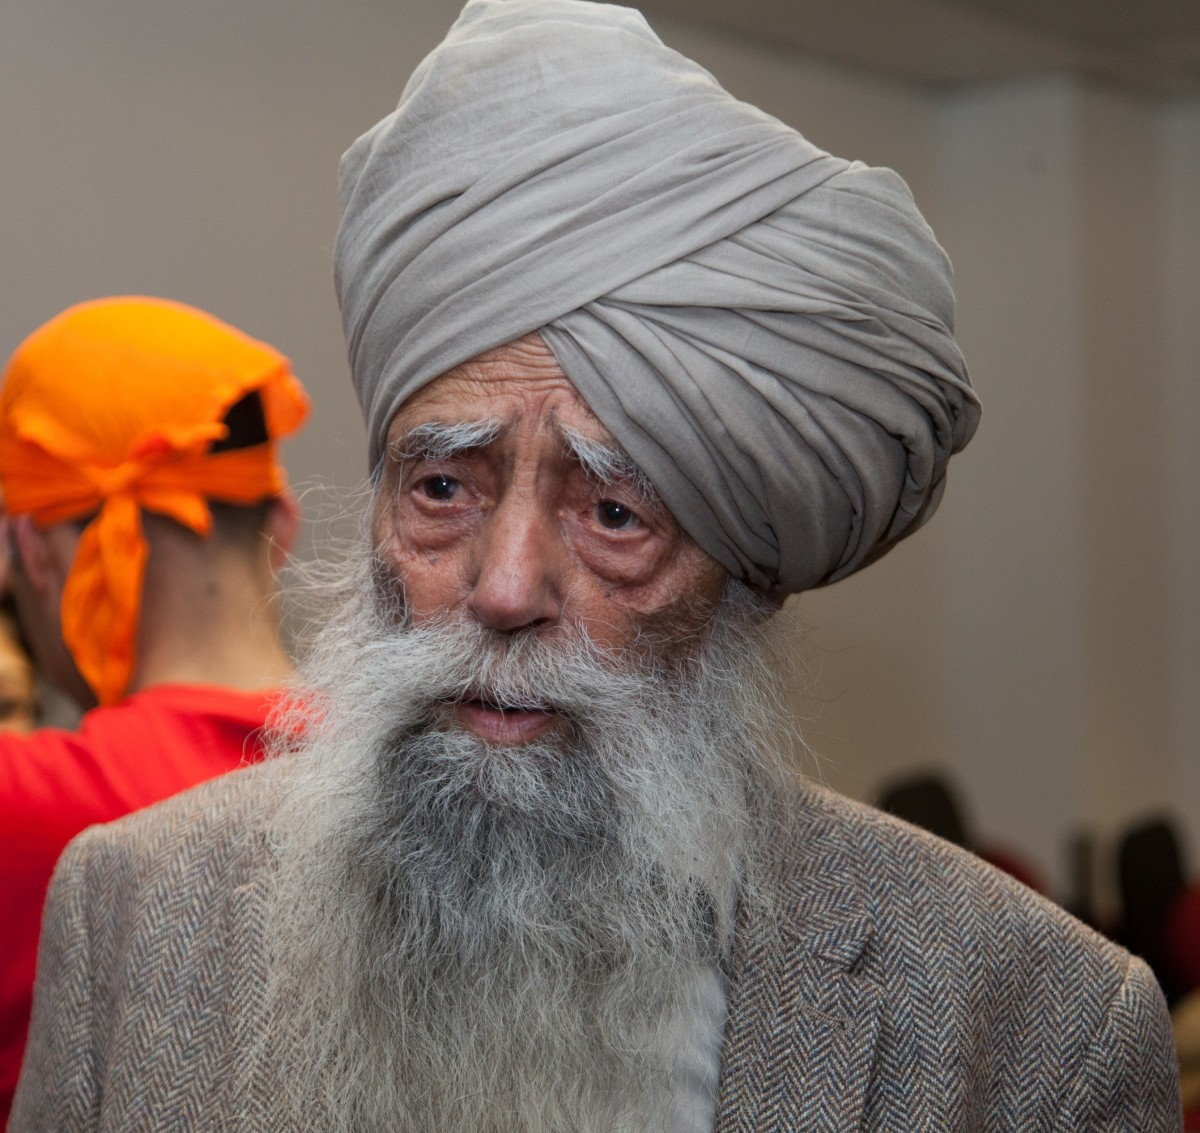 Fauja Singh took up long distance running at the age of 81 and ran his last marathon at the age of 104 before retiring from the sport in 2013.